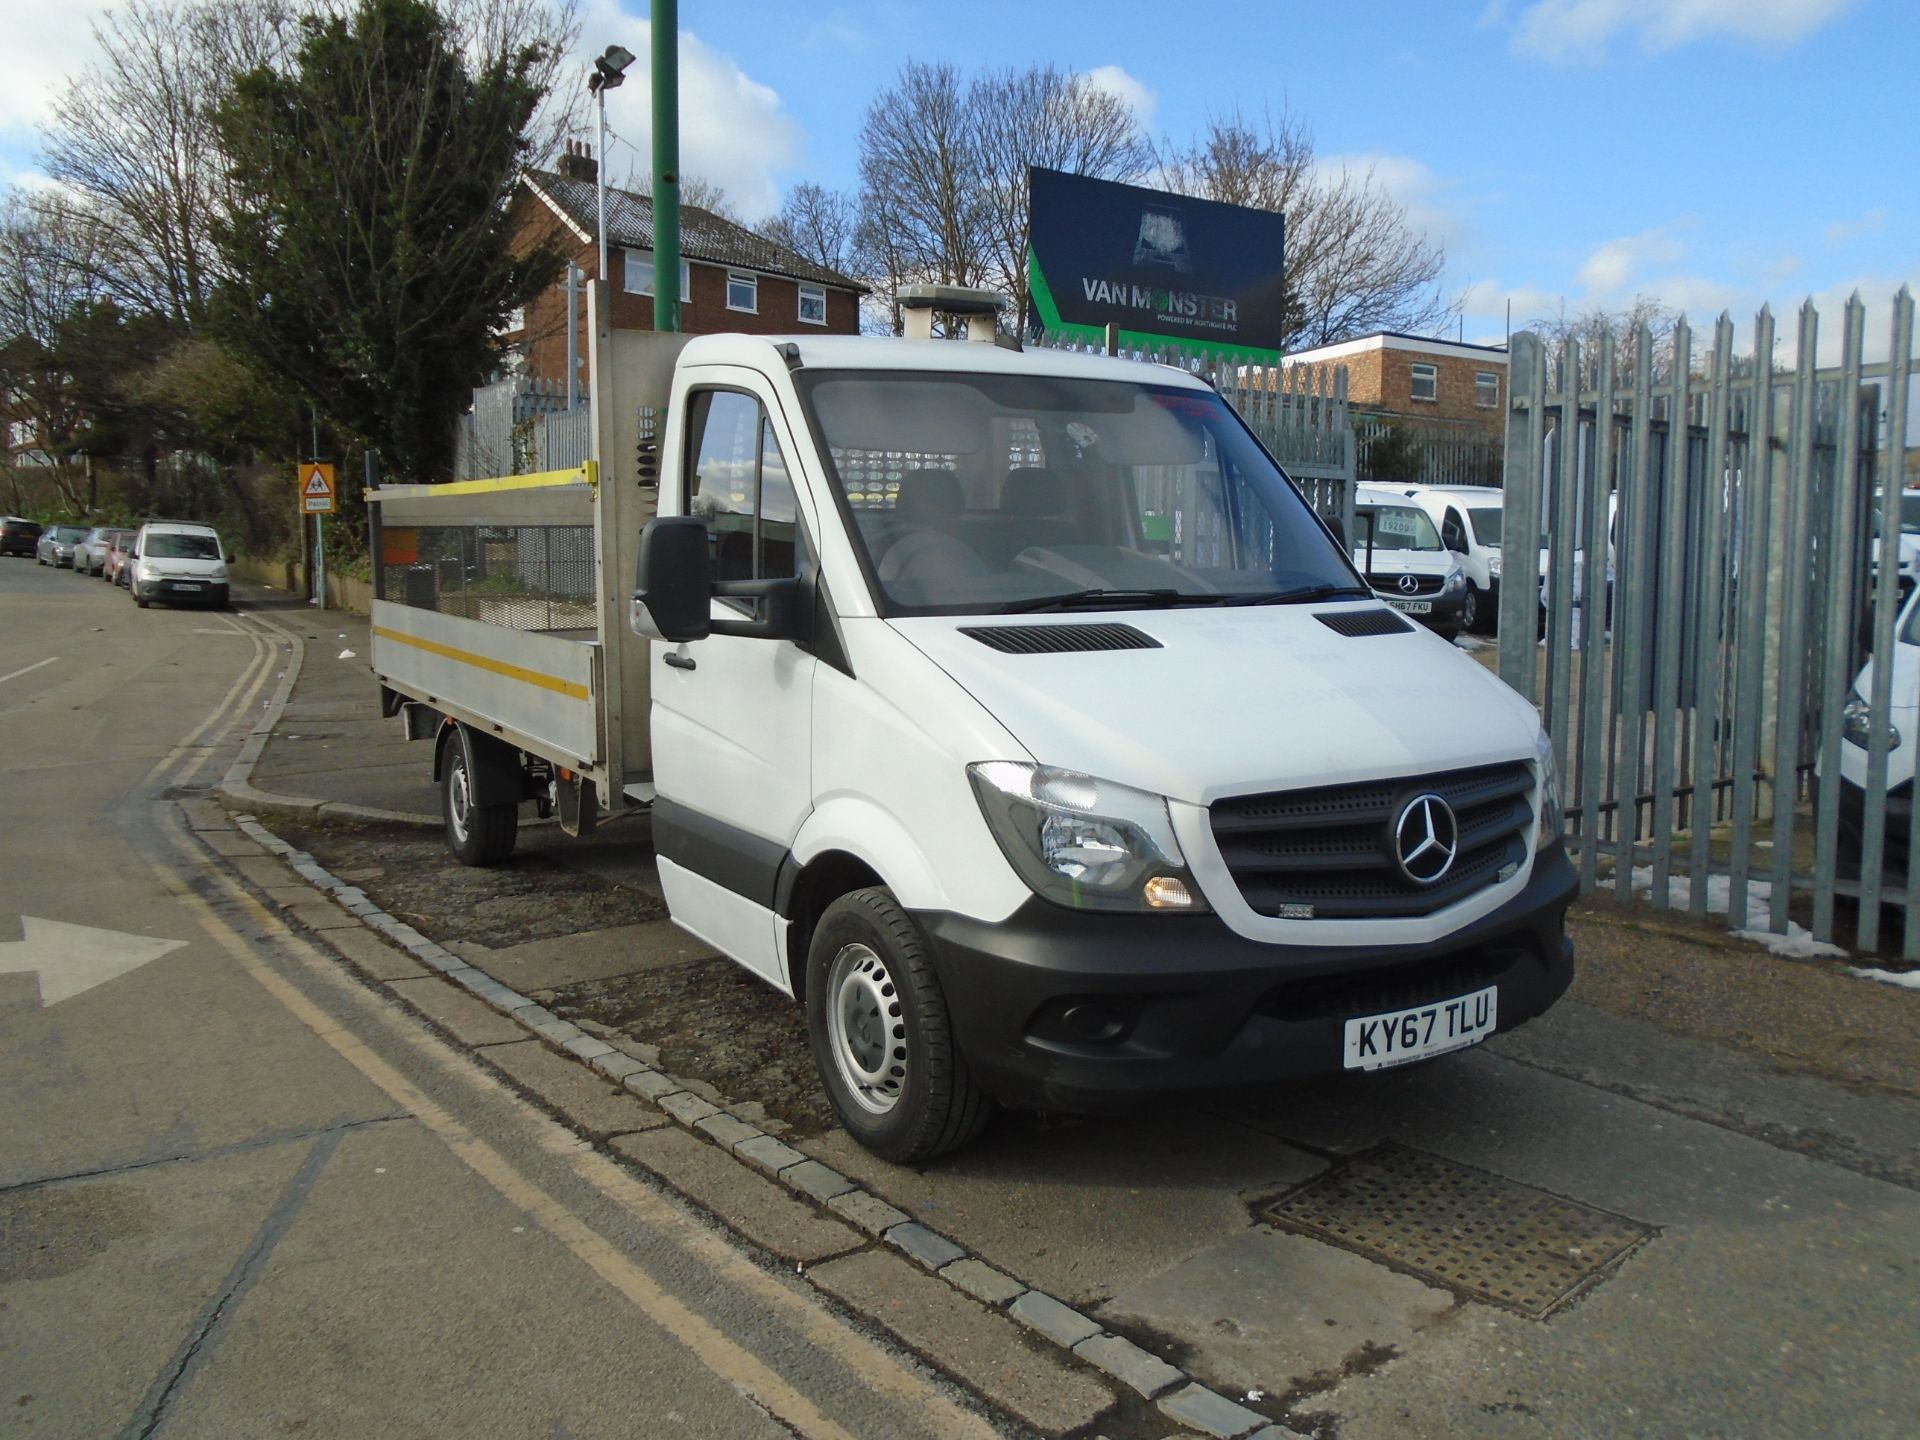 2017 Mercedes-Benz Sprinter 3.5T Chassis Cab *EURO 6* (KY67TLU)